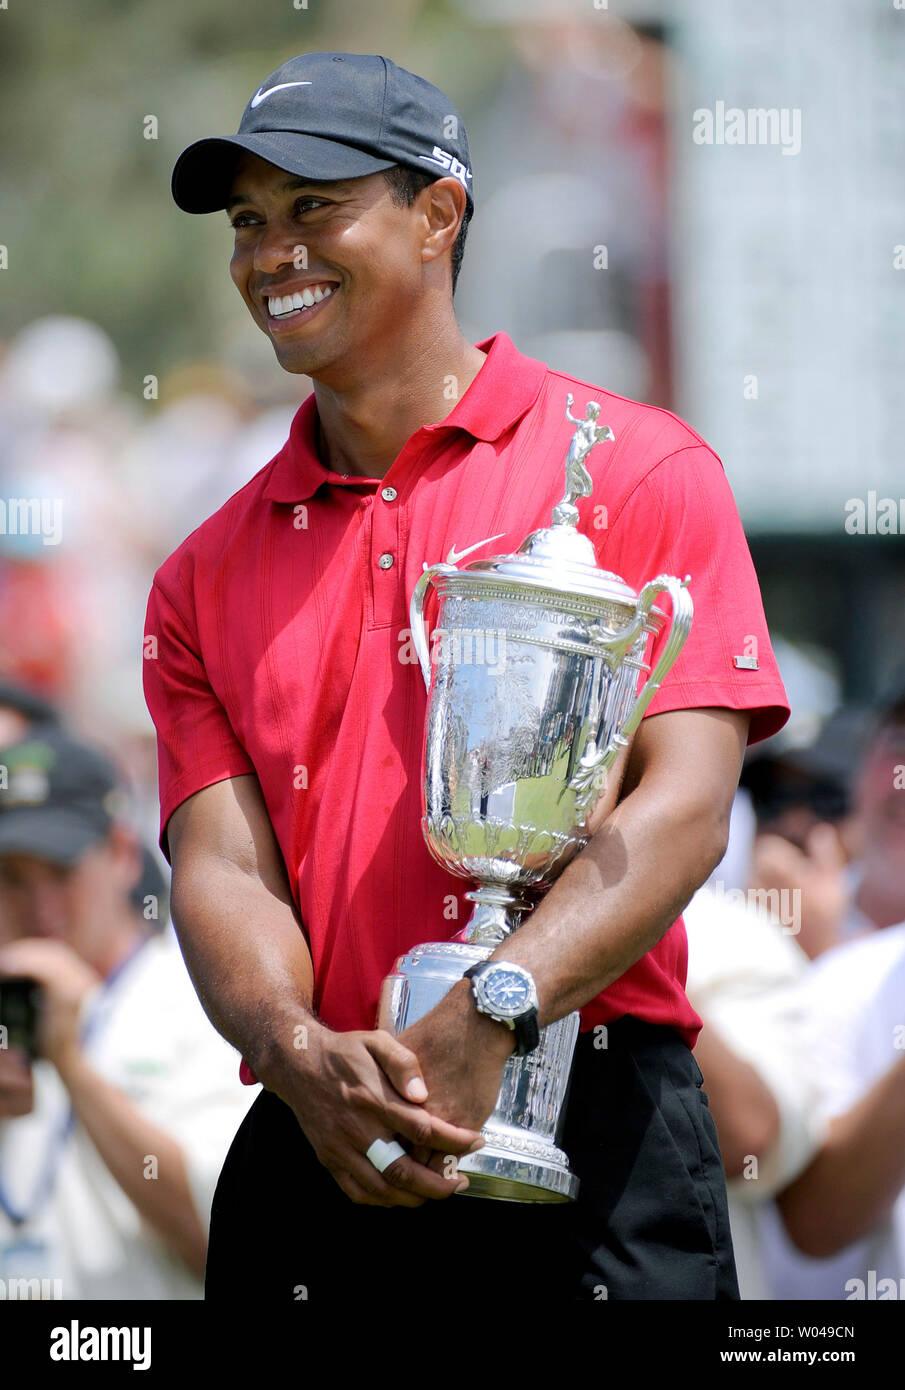 Tiger Woods hold the U.S. Open Trophy after winning the 108th U.S. Open  at Torrey Pines Golf Course in San Diego on June 16, 2008. Woods defeated Rocco Mediate by one stroke after a playoff round. (UPI Photo/Kevin Dietsch) - Stock Image